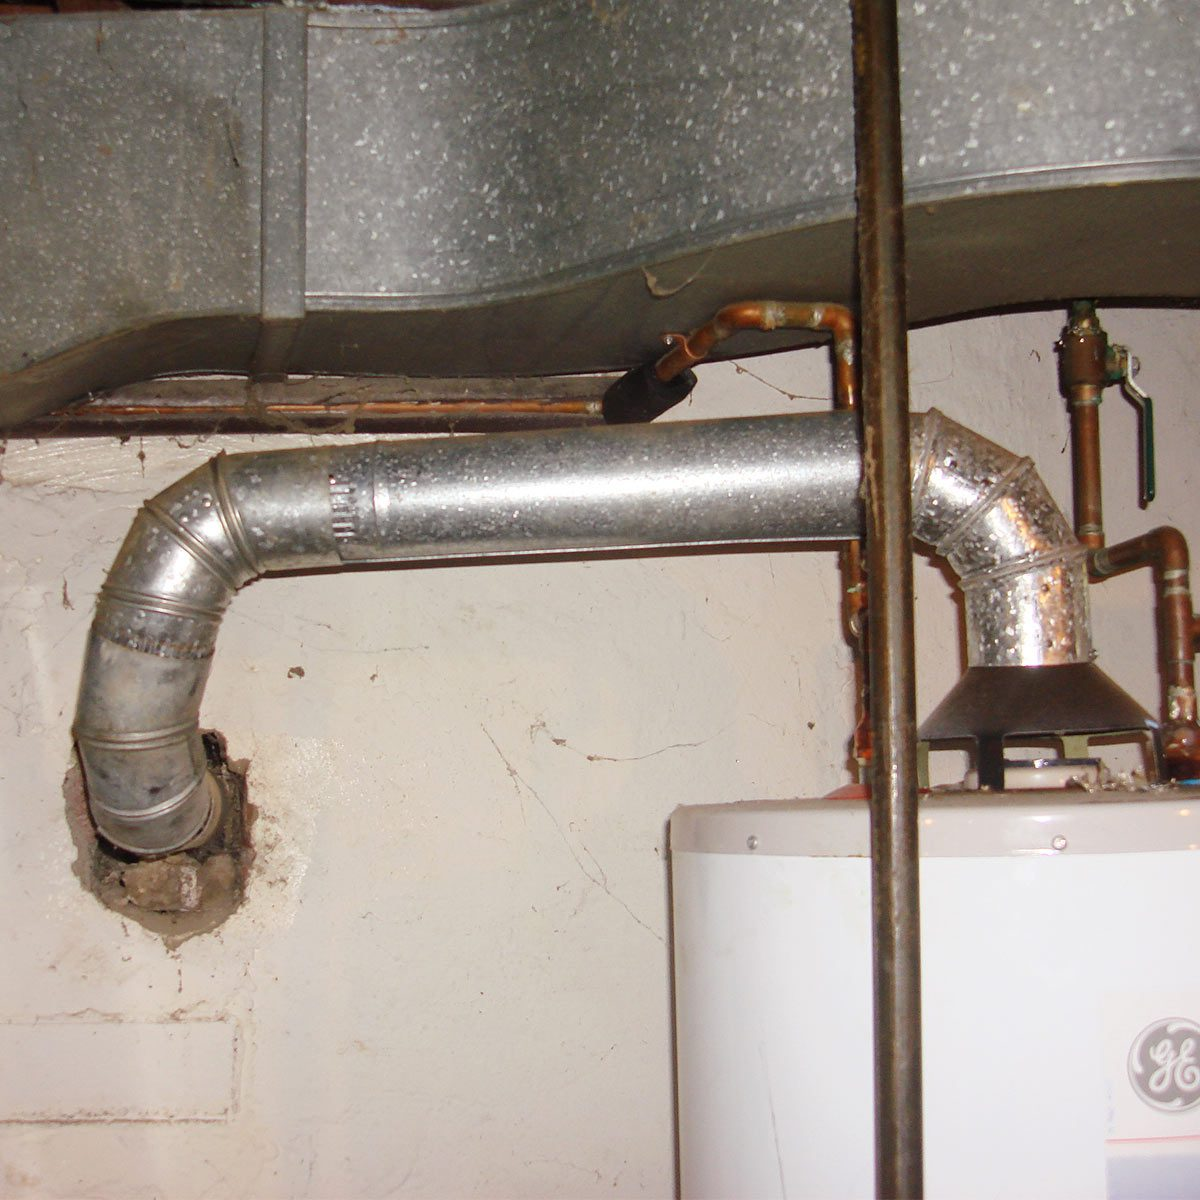 A Water Heater Vent Installed Like This Can Have Lethal